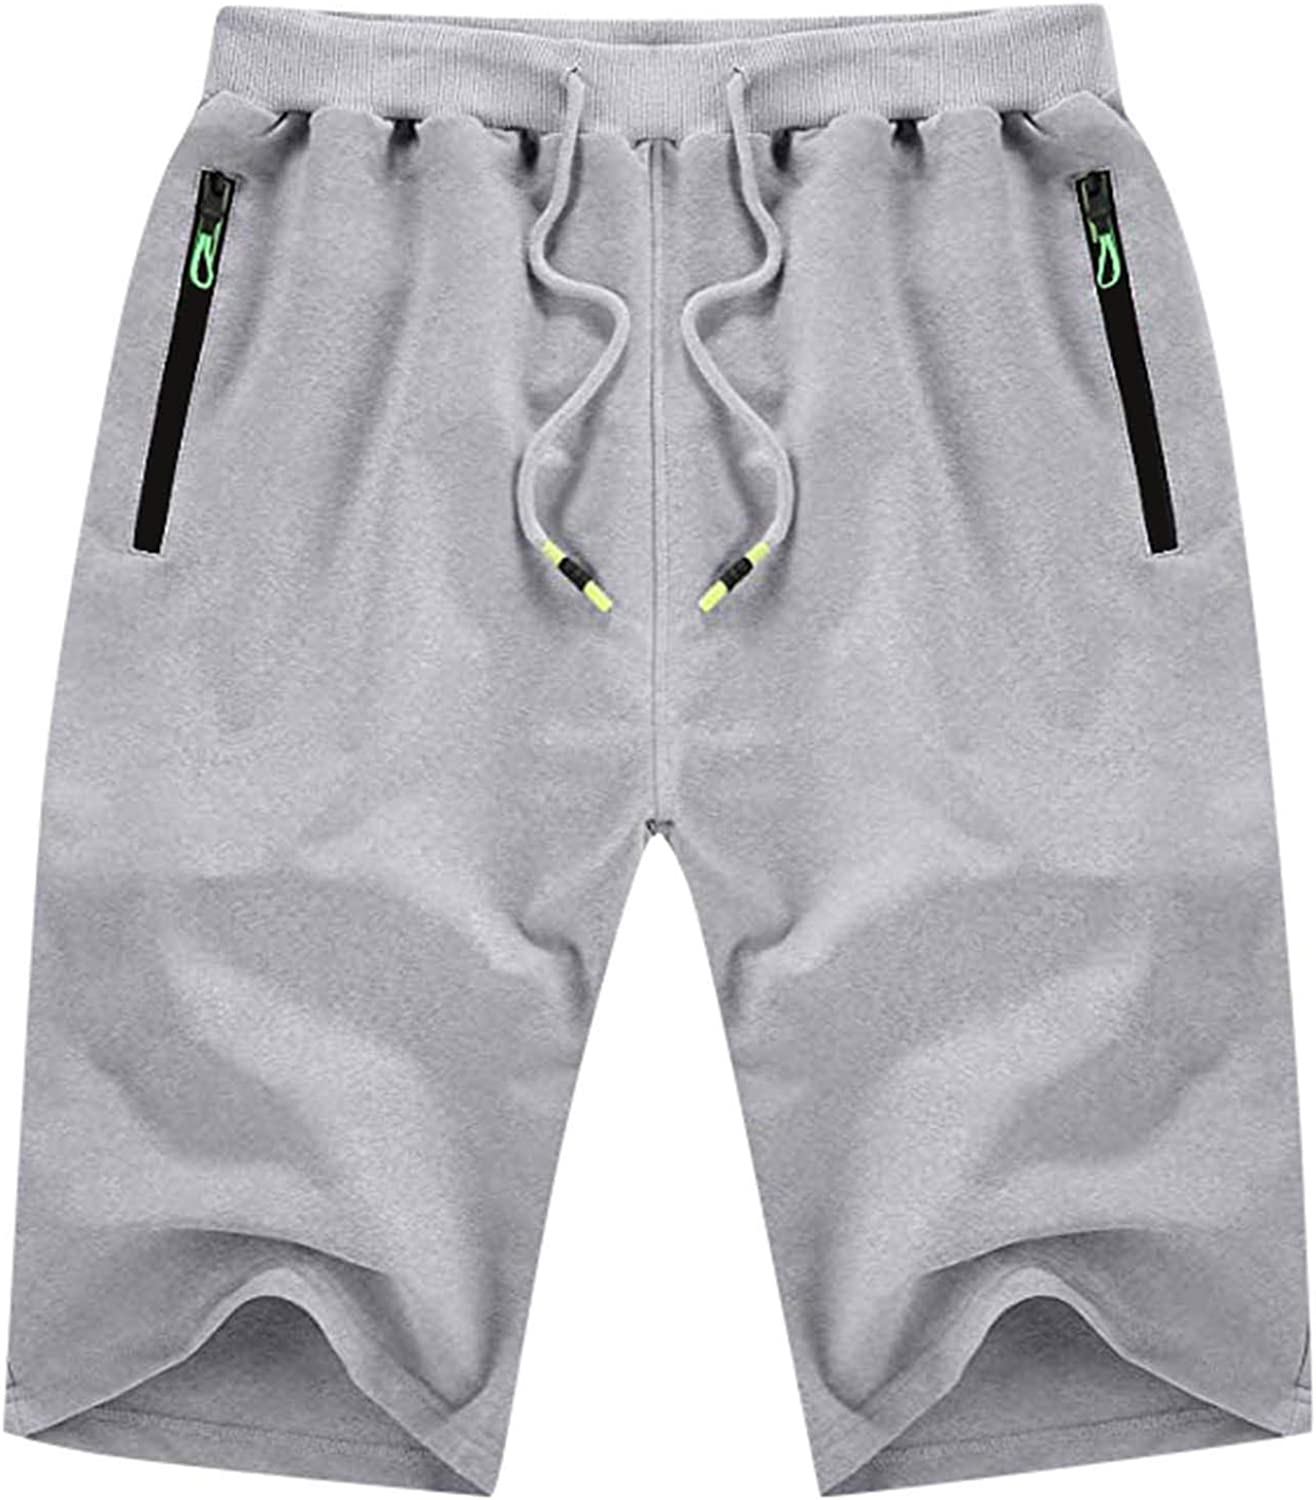 PHSHY Summer Short Pants for Mens Casual Elastic Waist Drawstring Hipster Joggering Sport Trousers with Zipper Pocket